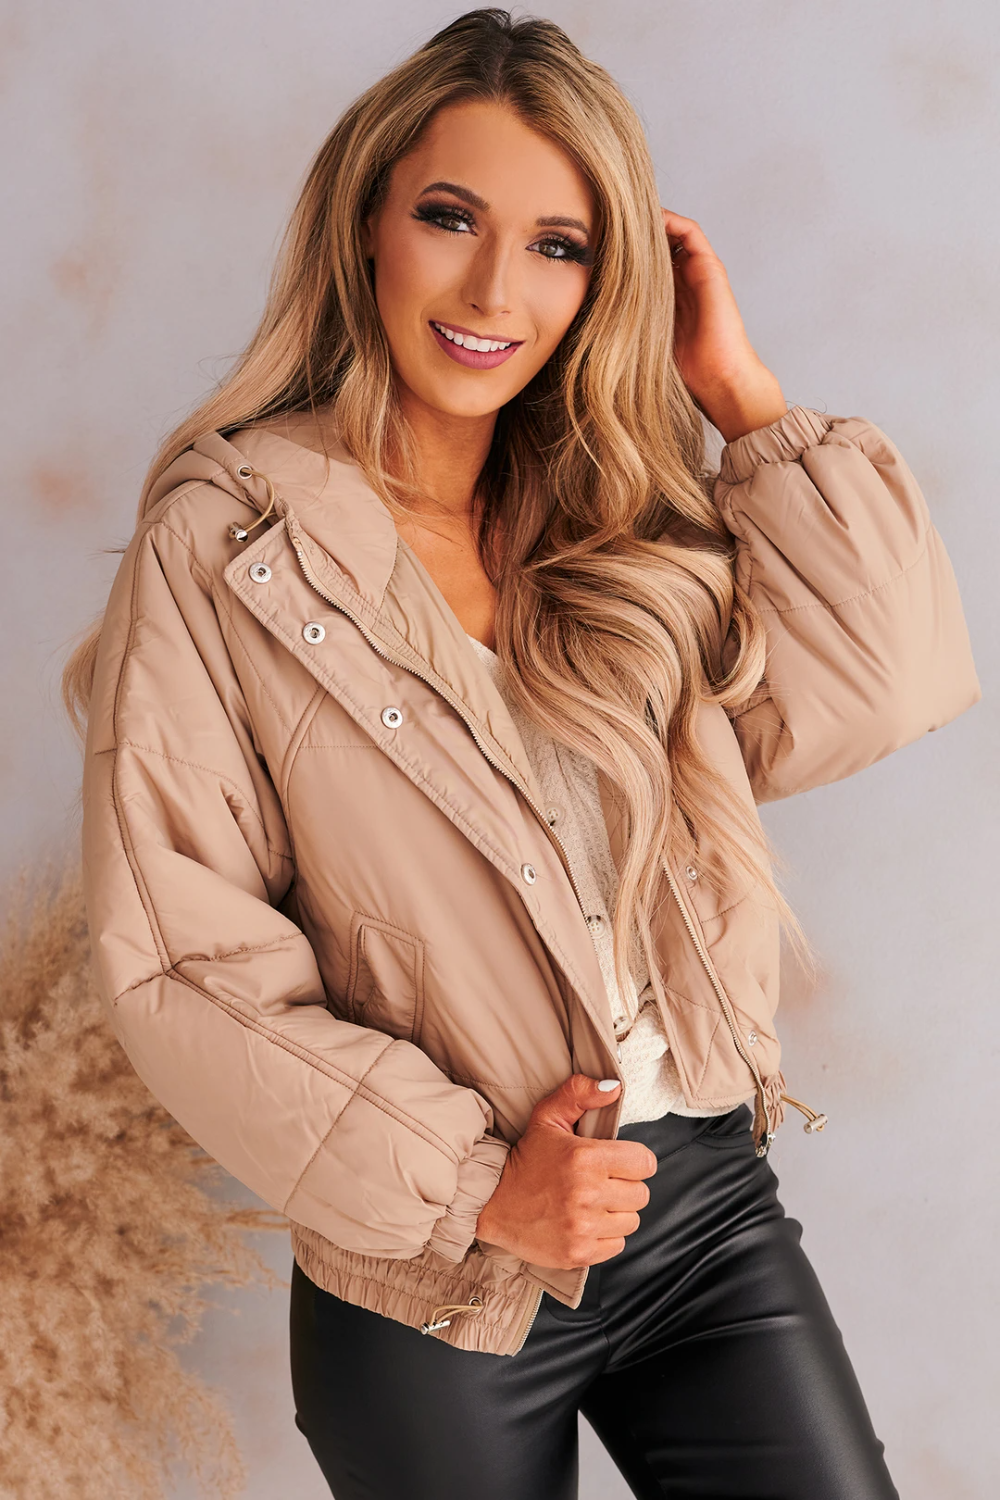 Take Cover Puffer Jacket Taupe In 2020 Puffer Jackets Jackets Fall Wear [ 1500 x 1000 Pixel ]